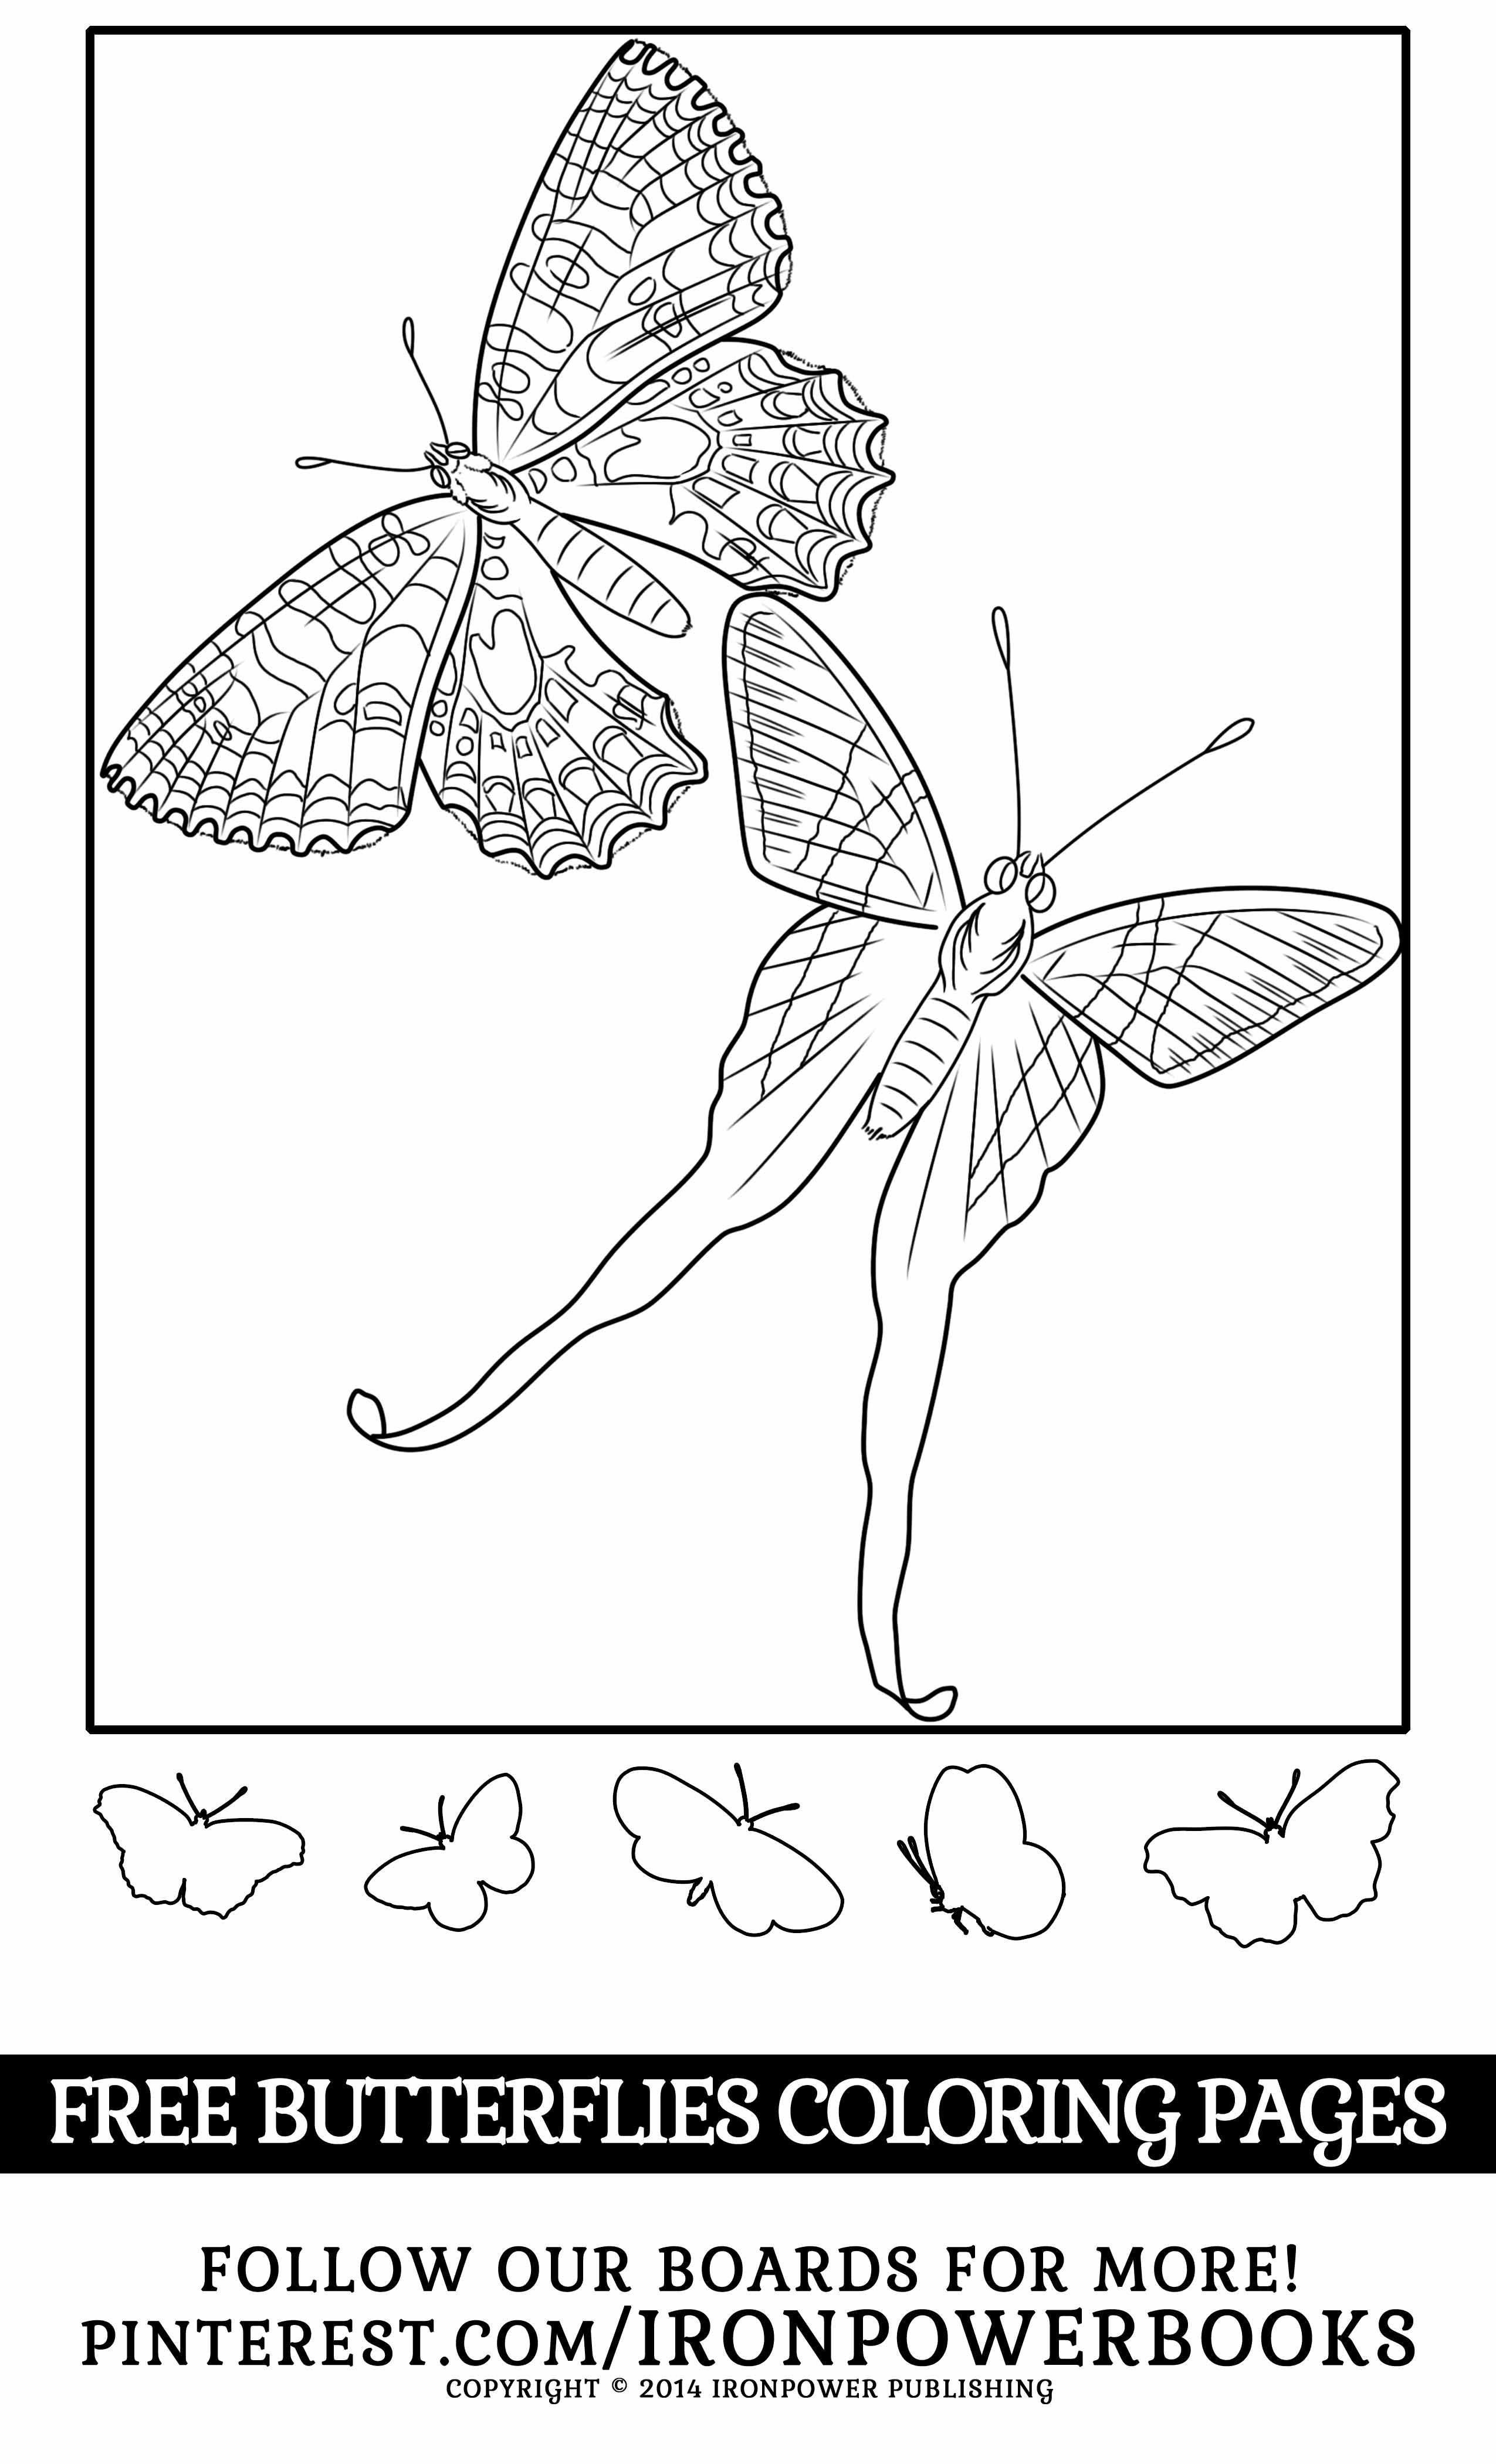 Printable Butterfly Coloring Pages Ironpowerbooks Very Detailed Butterfly Illustrations Line Dr Butterfly Coloring Page Coloring Pages Insect Coloring Pages [ 4200 x 2550 Pixel ]